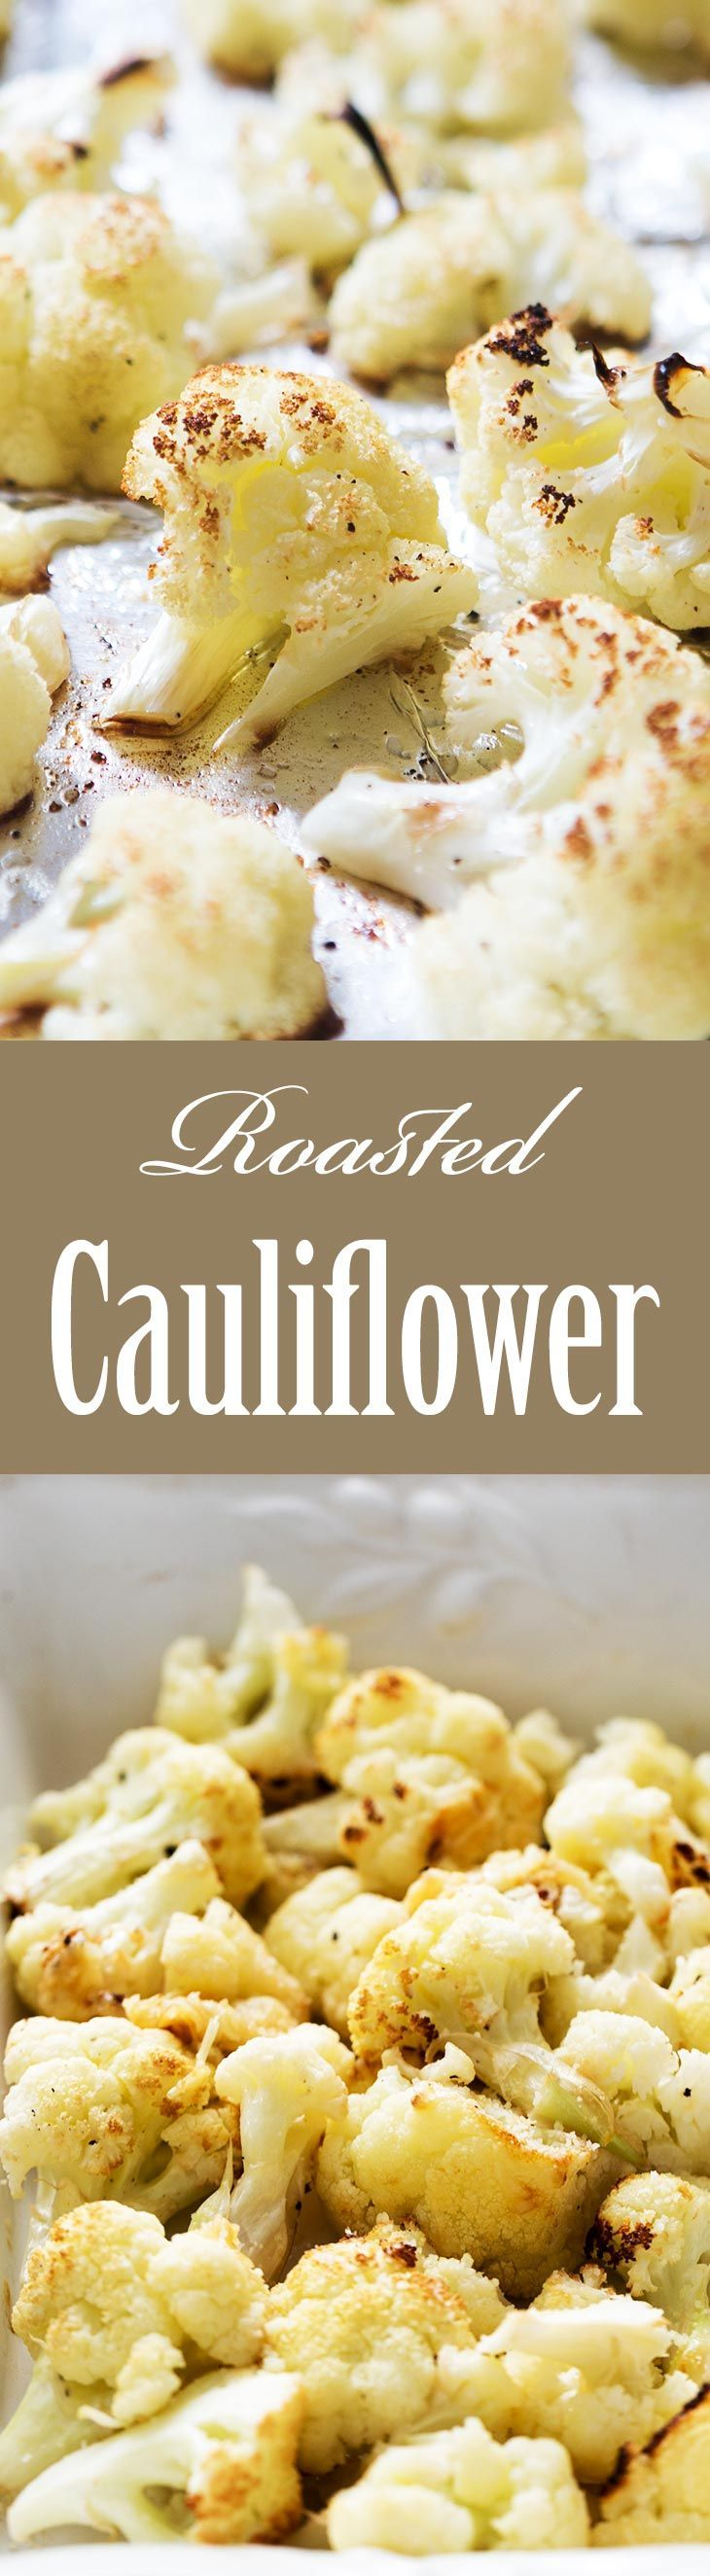 ~ Oven-roasted cauliflower florets, with garlic, lemon, olive oil ...